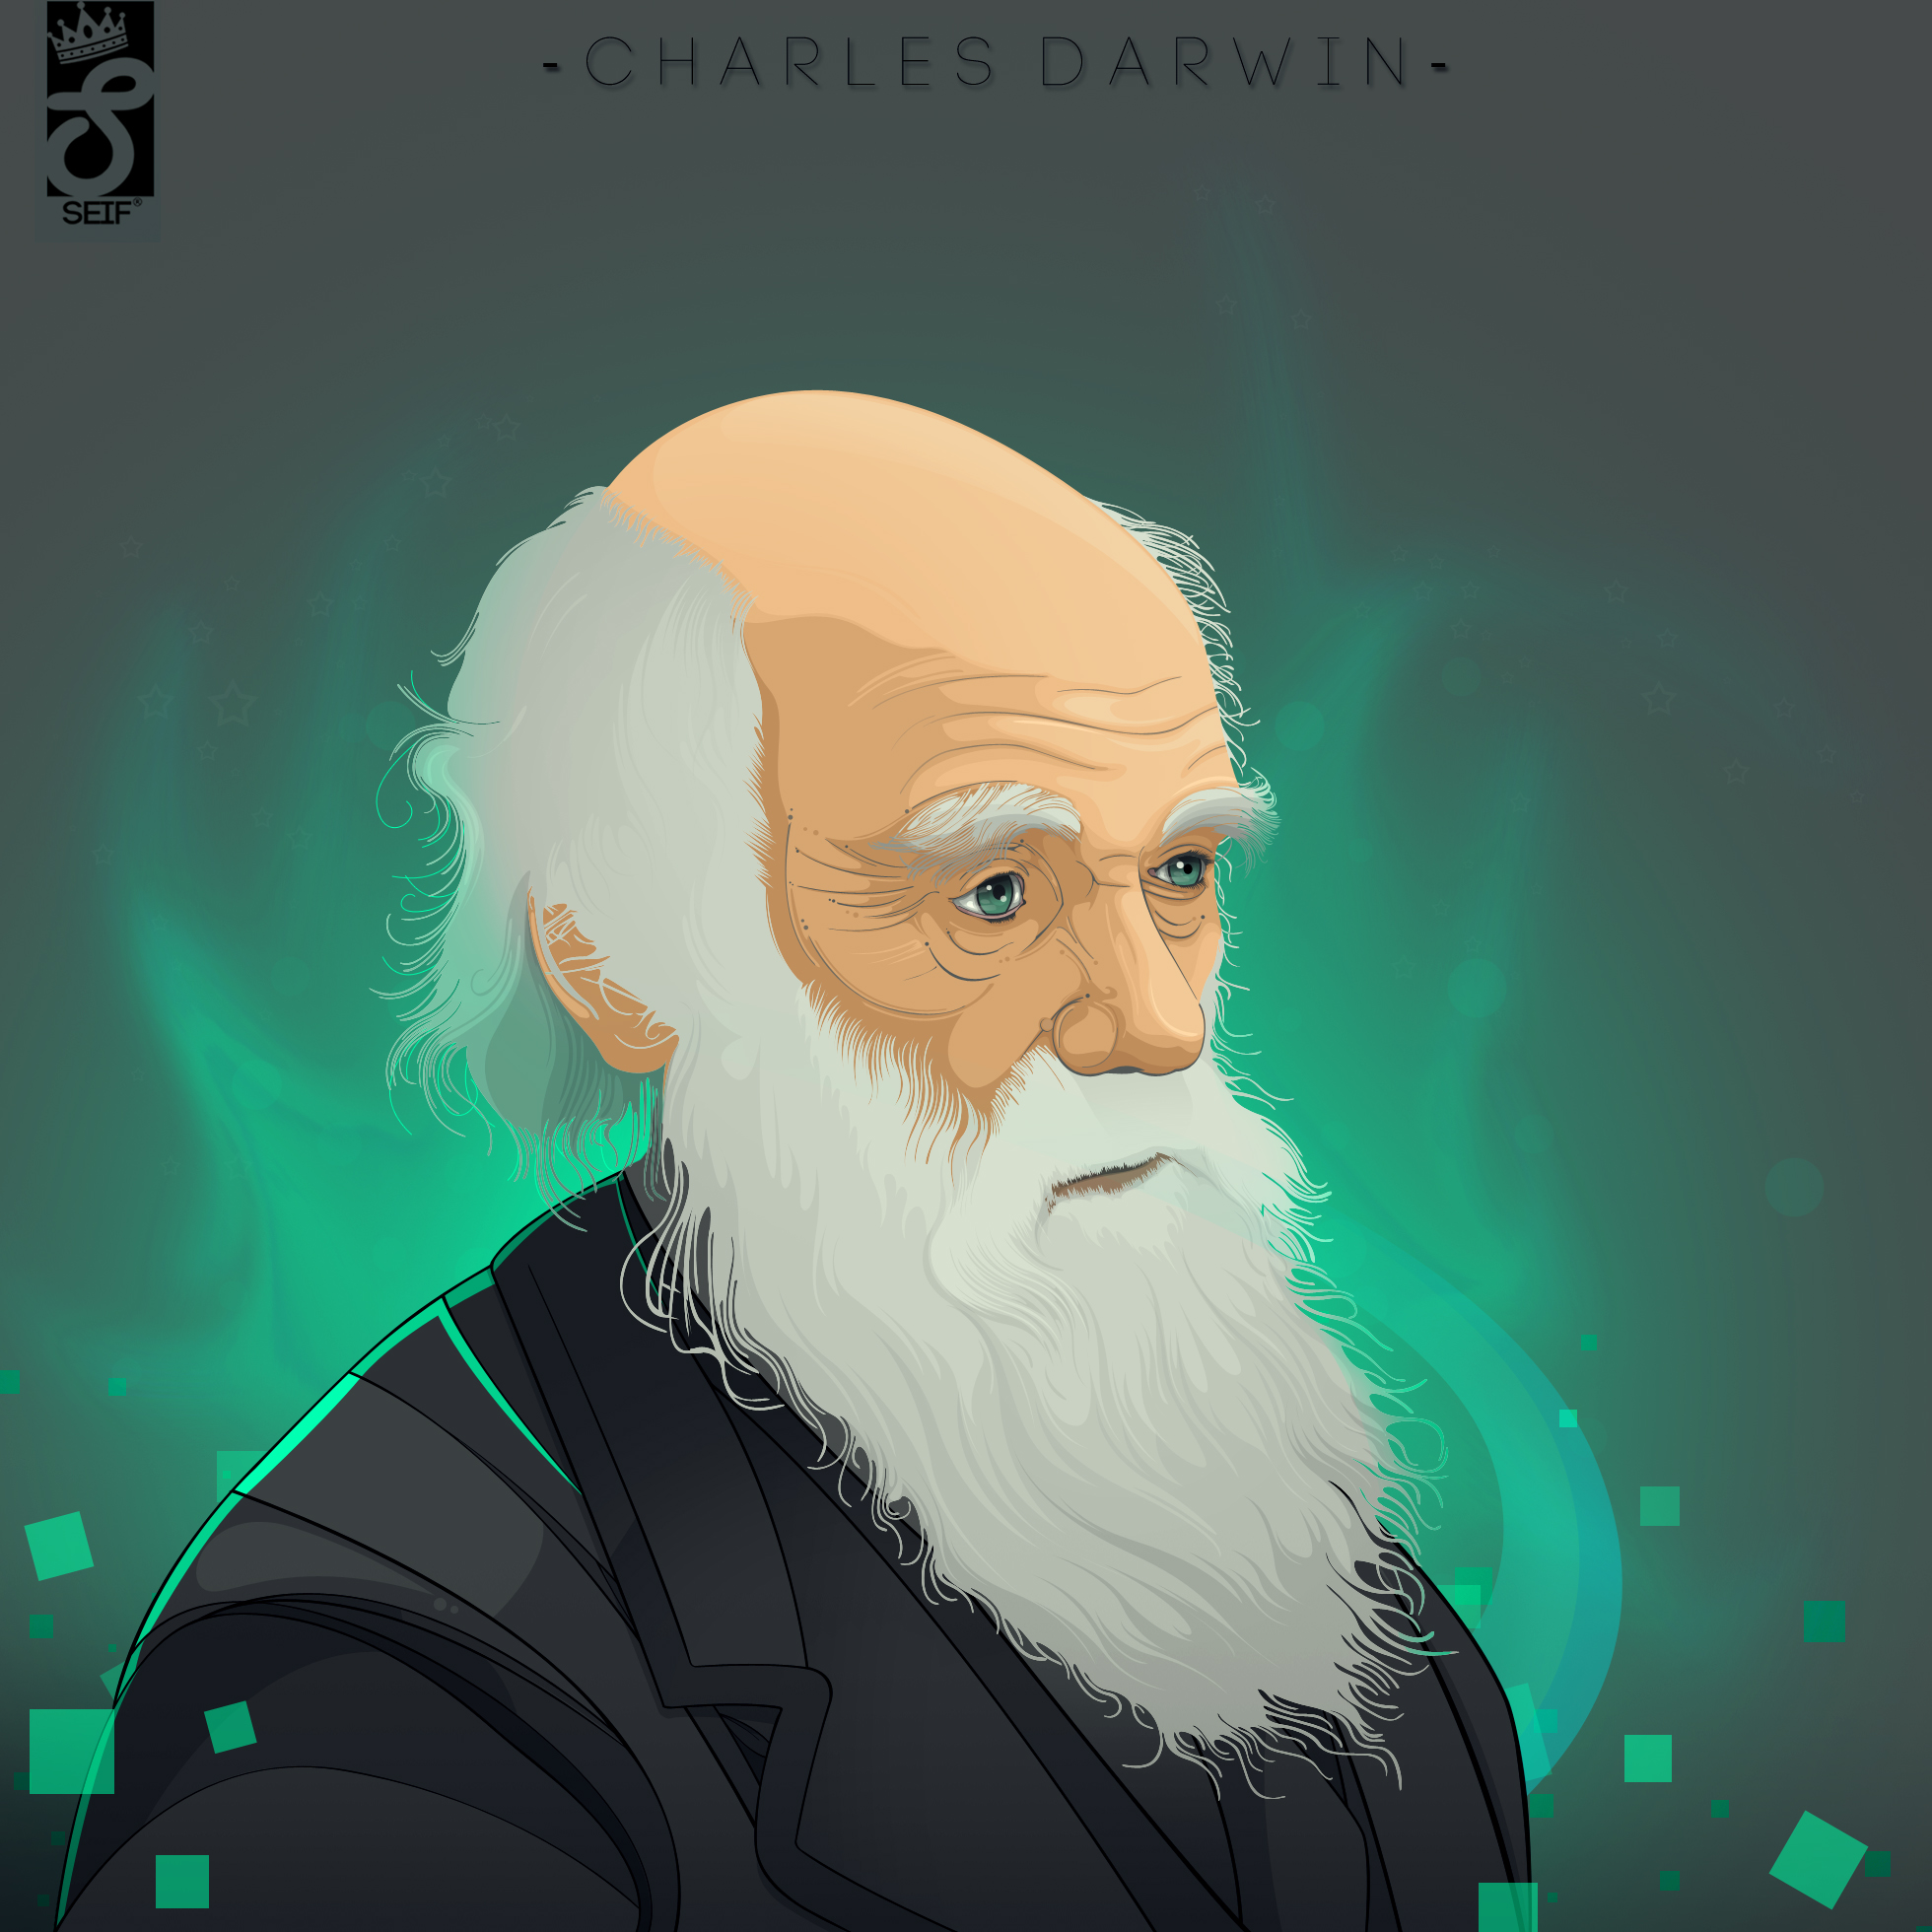 Charles Darwin vector art by SeifDVA